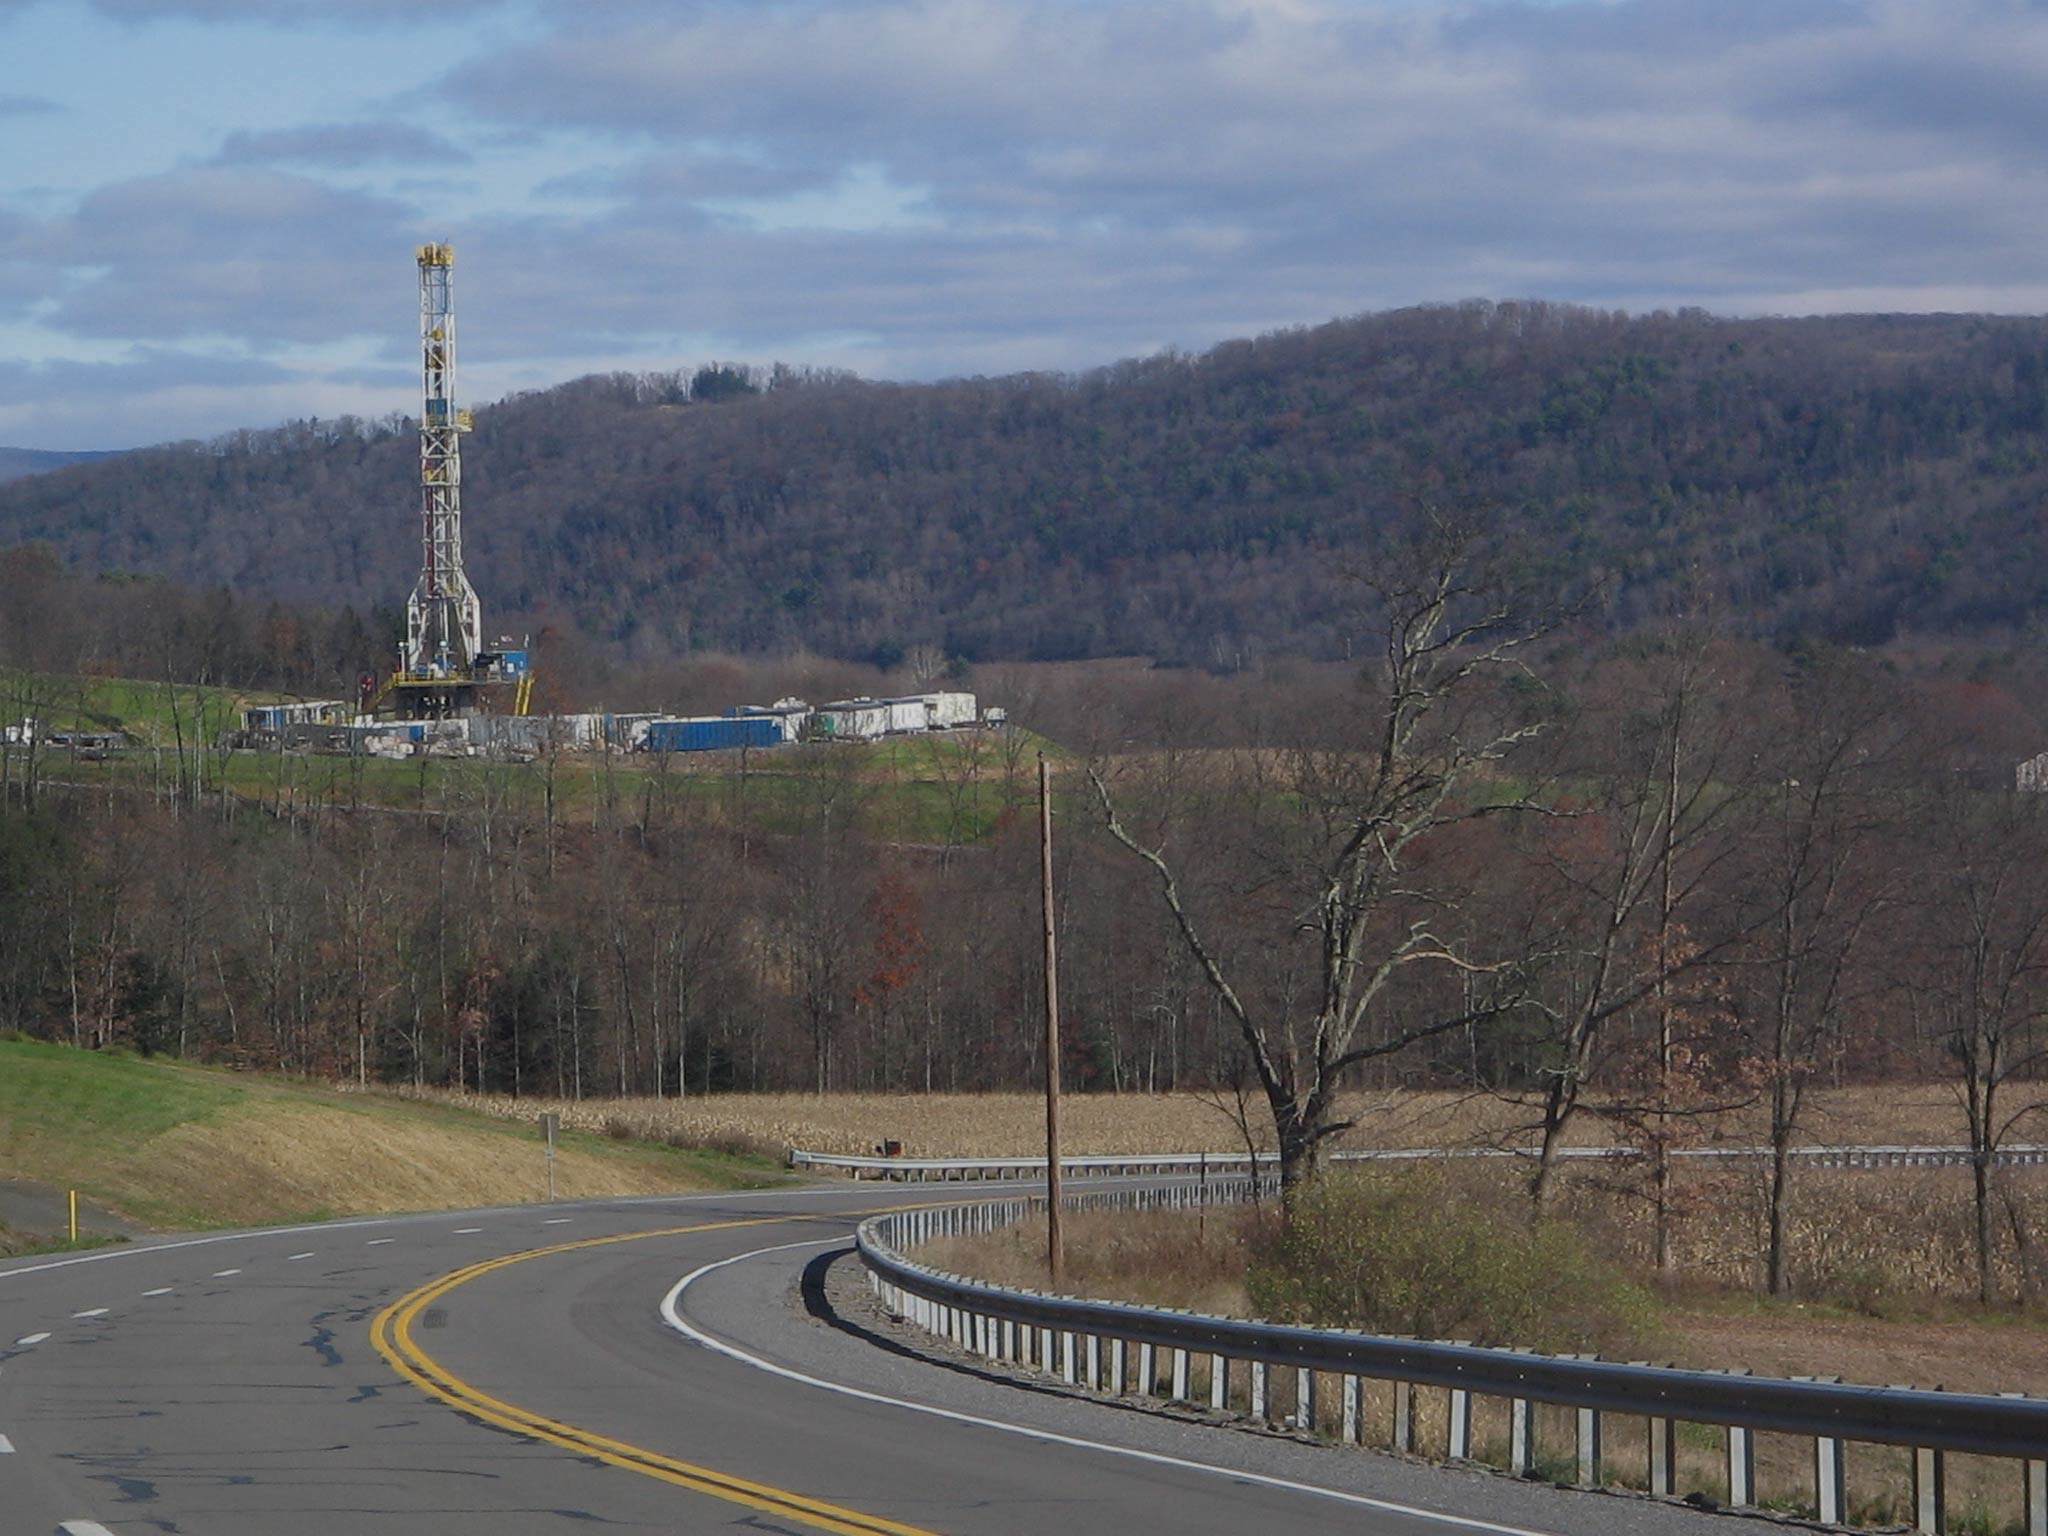 Fracking in the Marcellus Shale